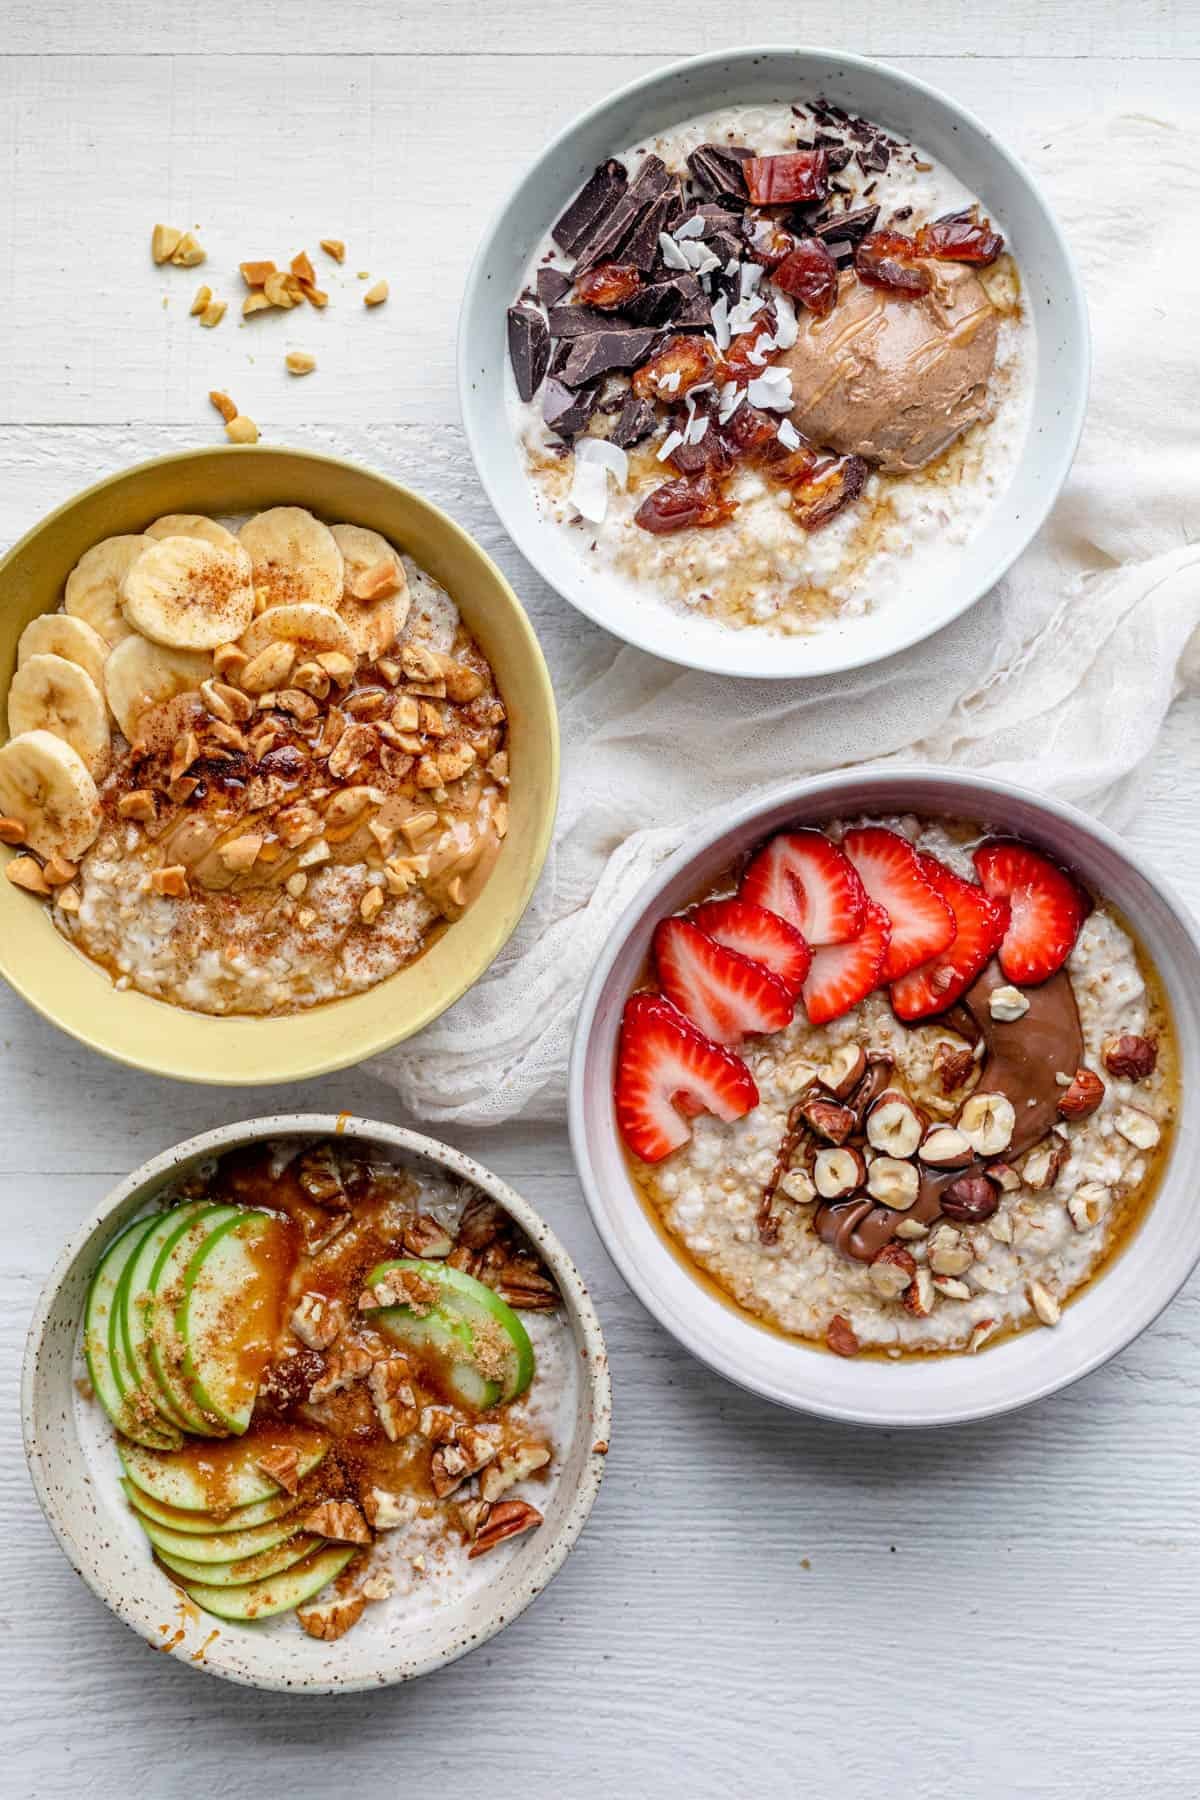 4 bowls of overnight steel cut oats with different toppings